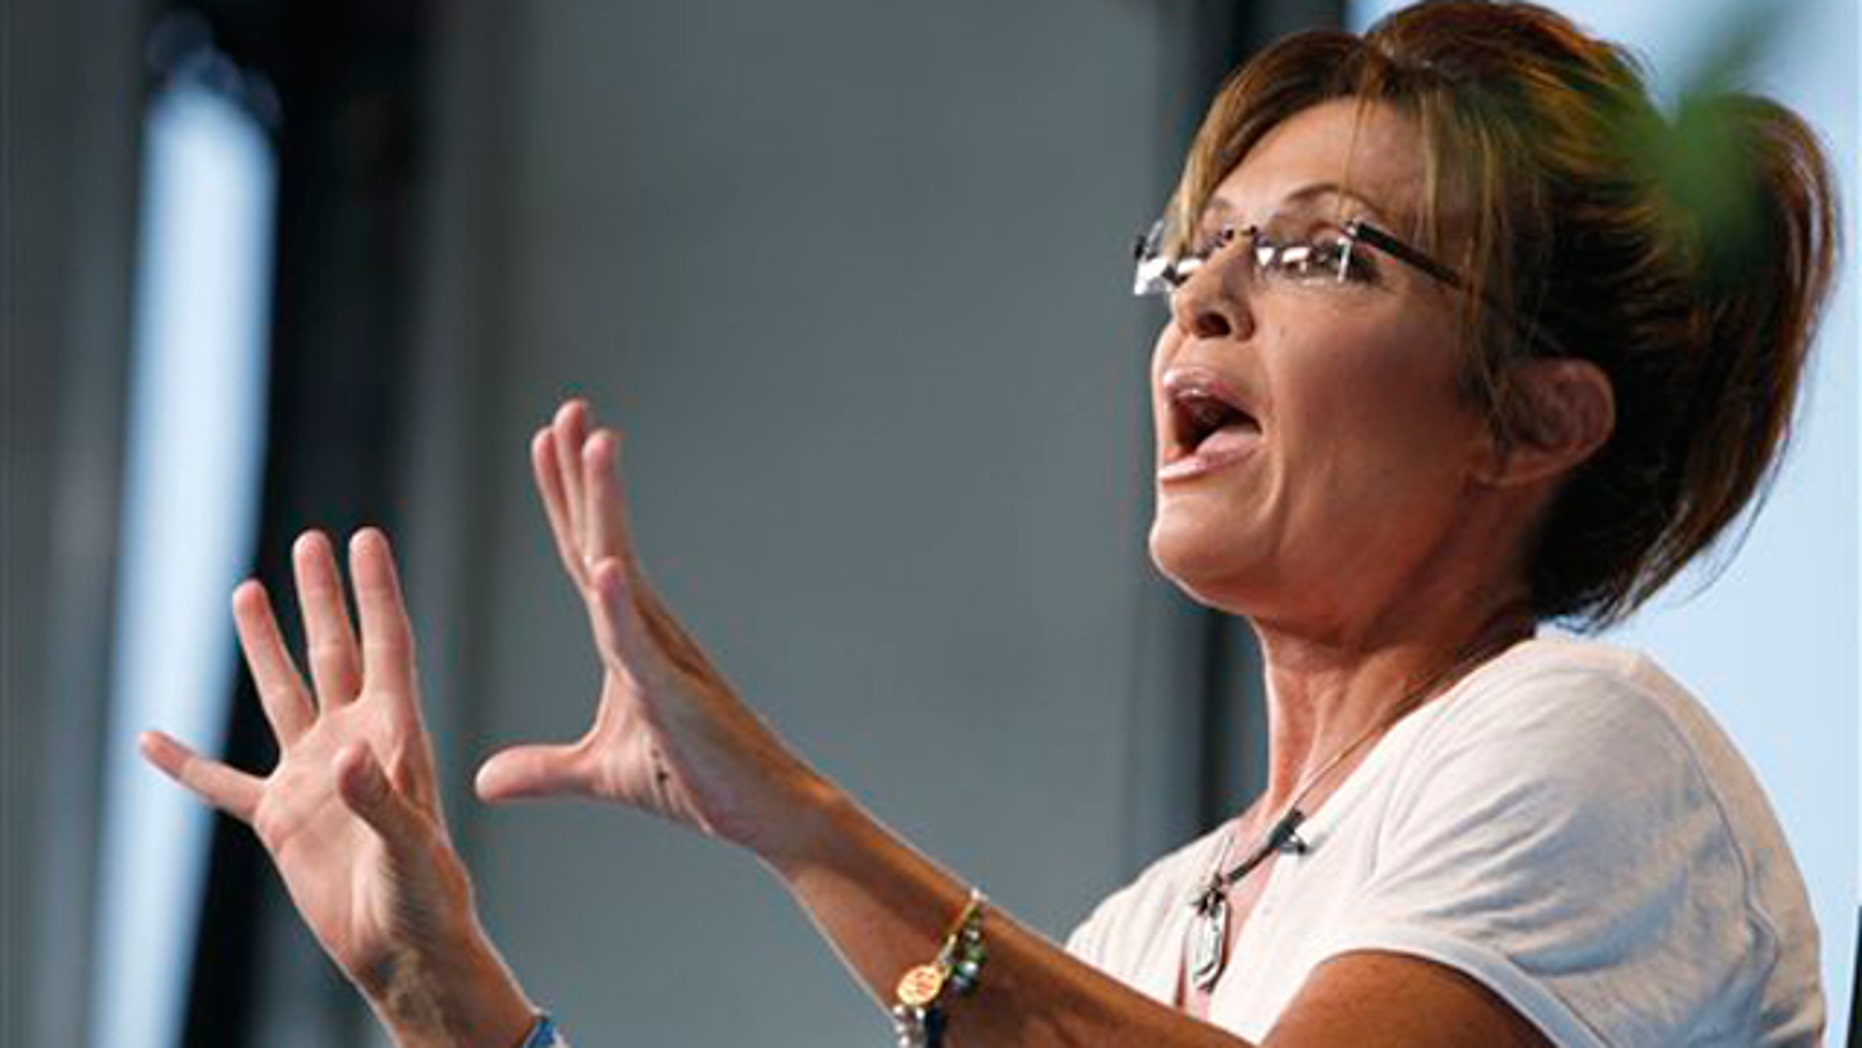 Former Alaska Gov. Sarah Palin speaks as she is interviewed by Fox News at the Iowa State Fair in Des Moines, Iowa, Aug. 12.